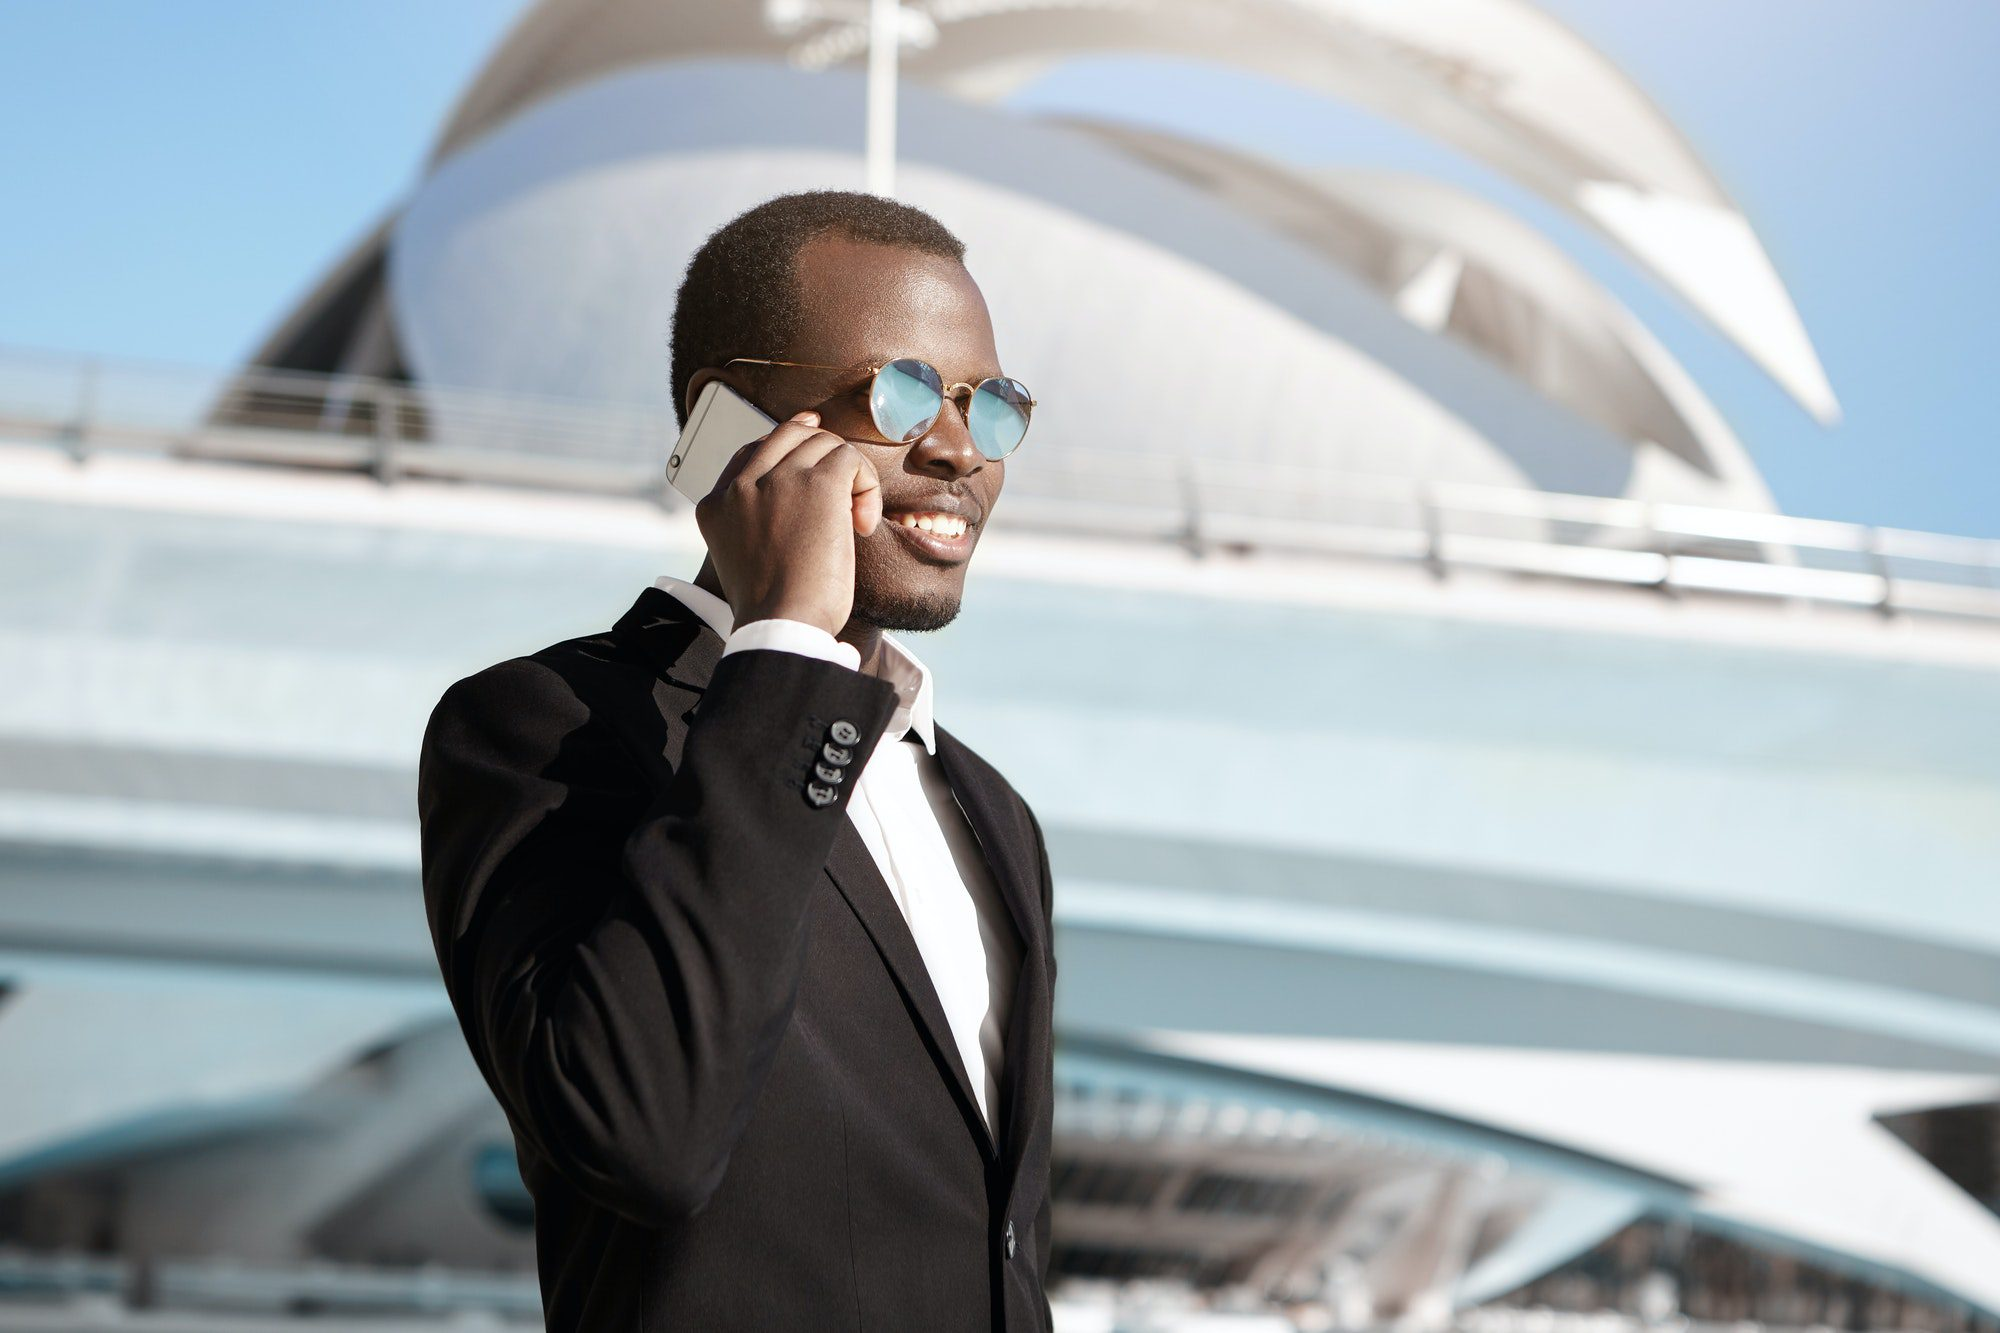 Businesspeople, Urban Lifestyle, Modern Technologies And Communication Concept. Joyful African CEO I